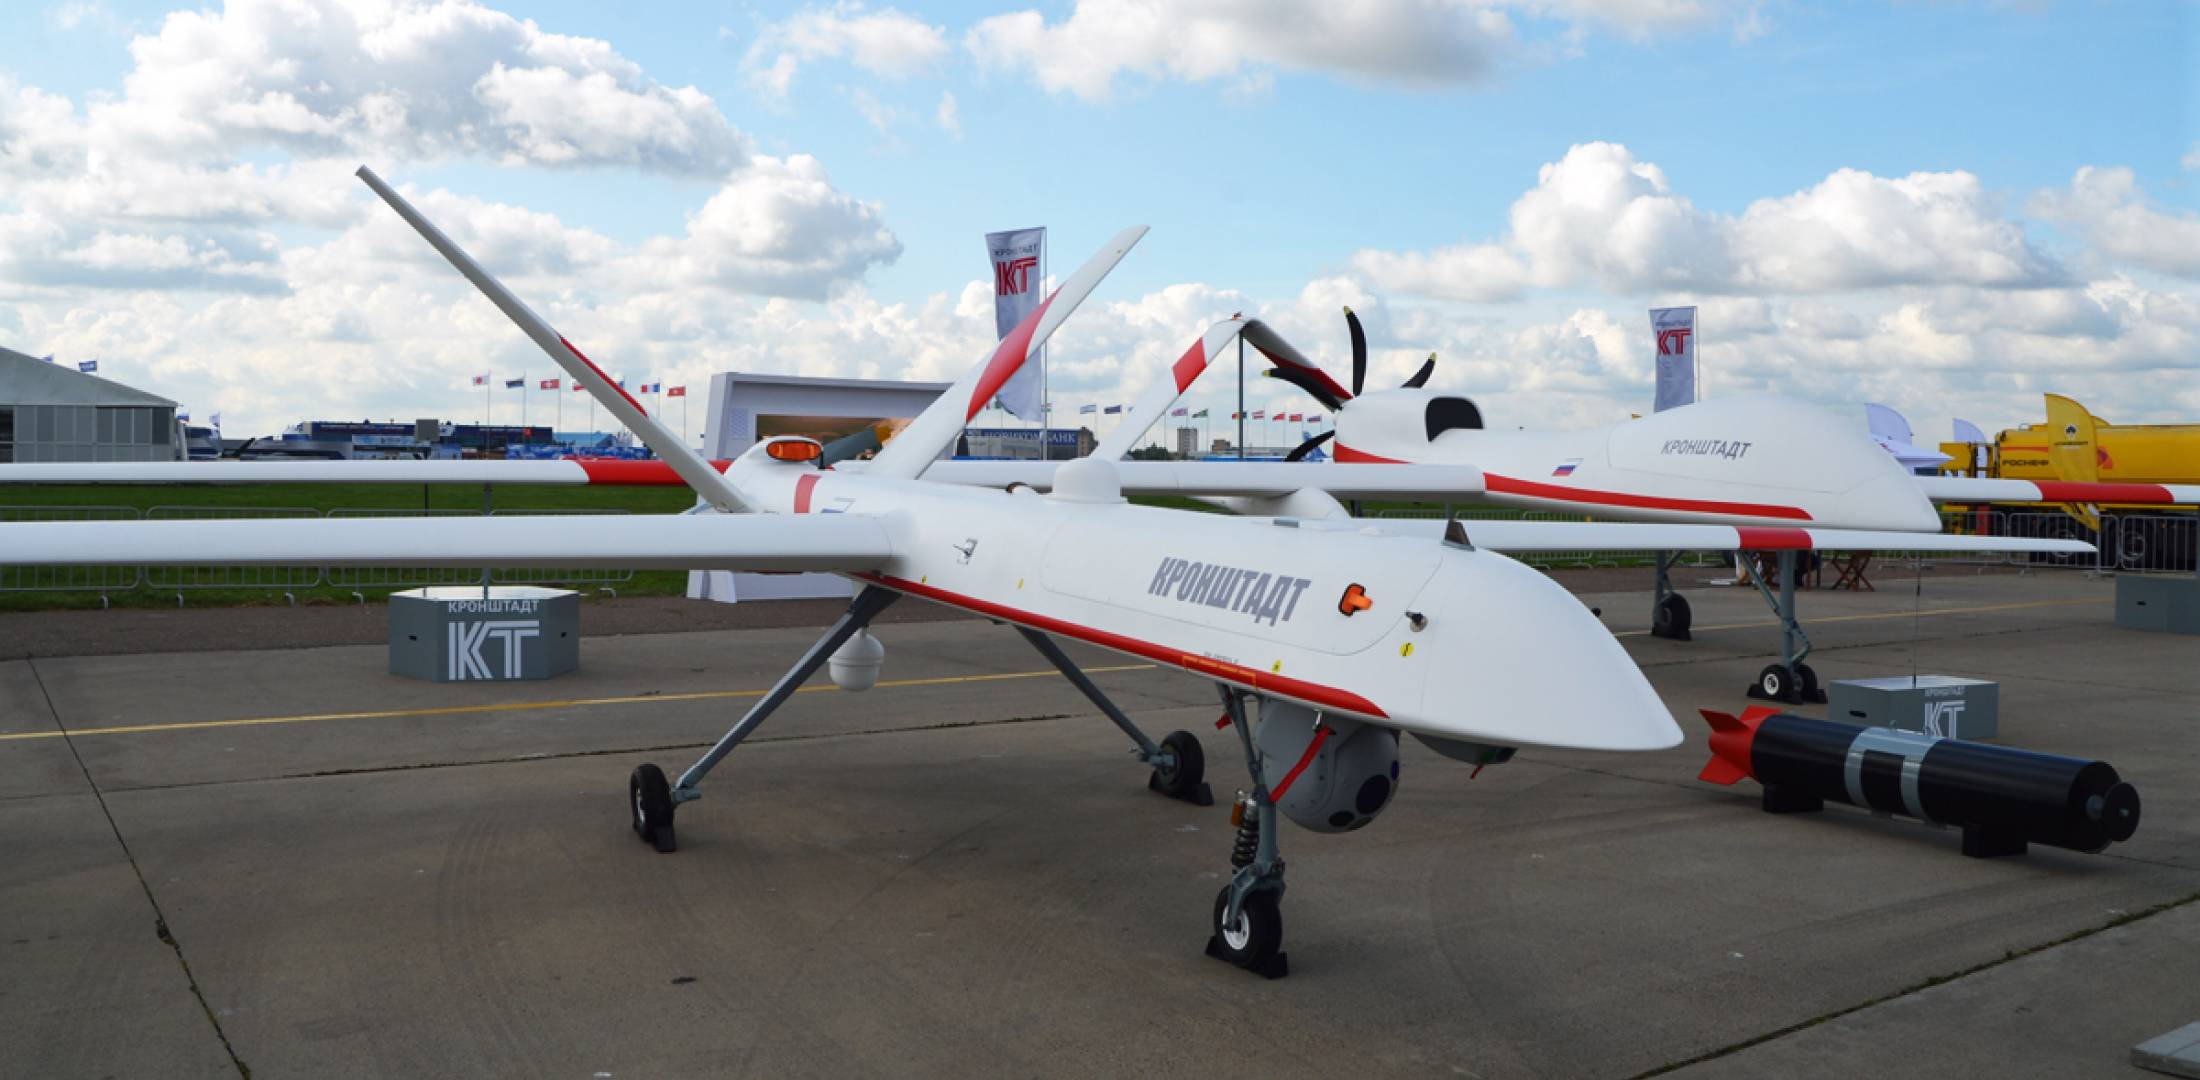 Russia To Begin Exporting Orion Attack UAVs In 2022